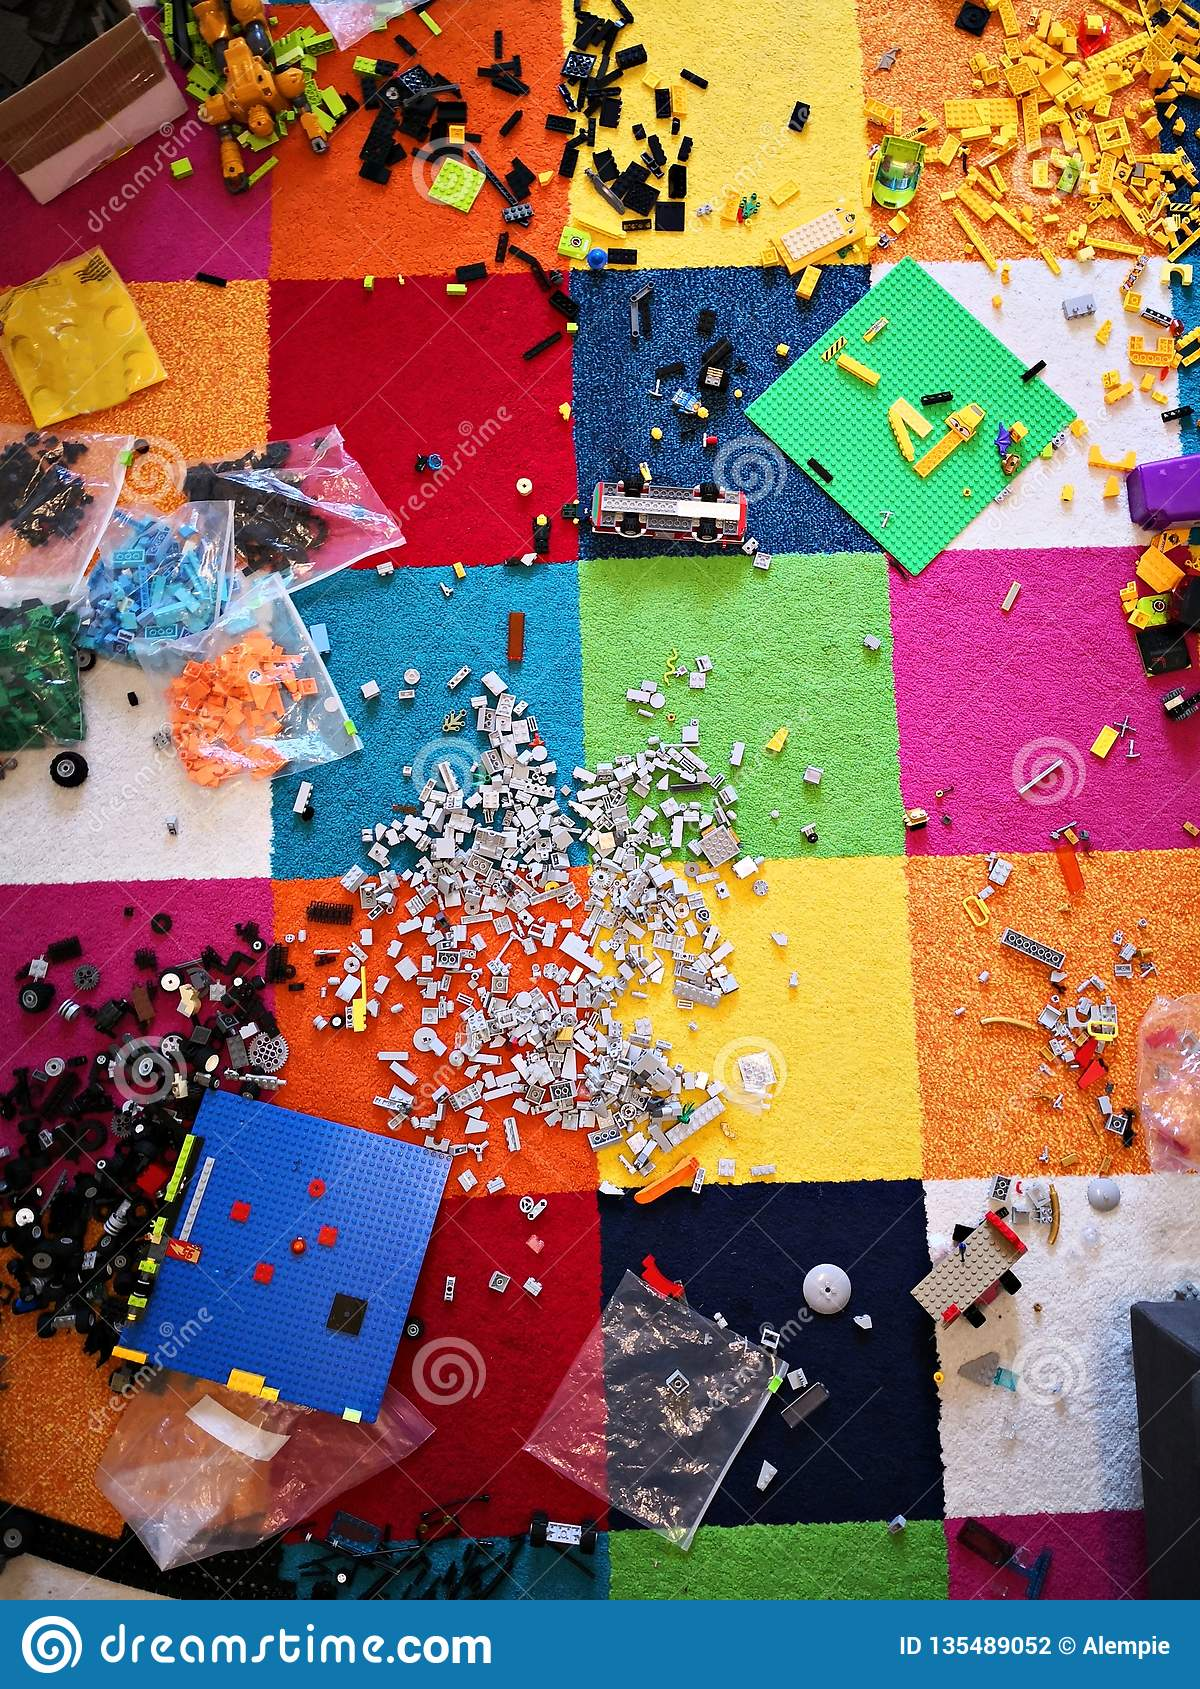 Messy kids room stock photo. Image of background, carpet ...